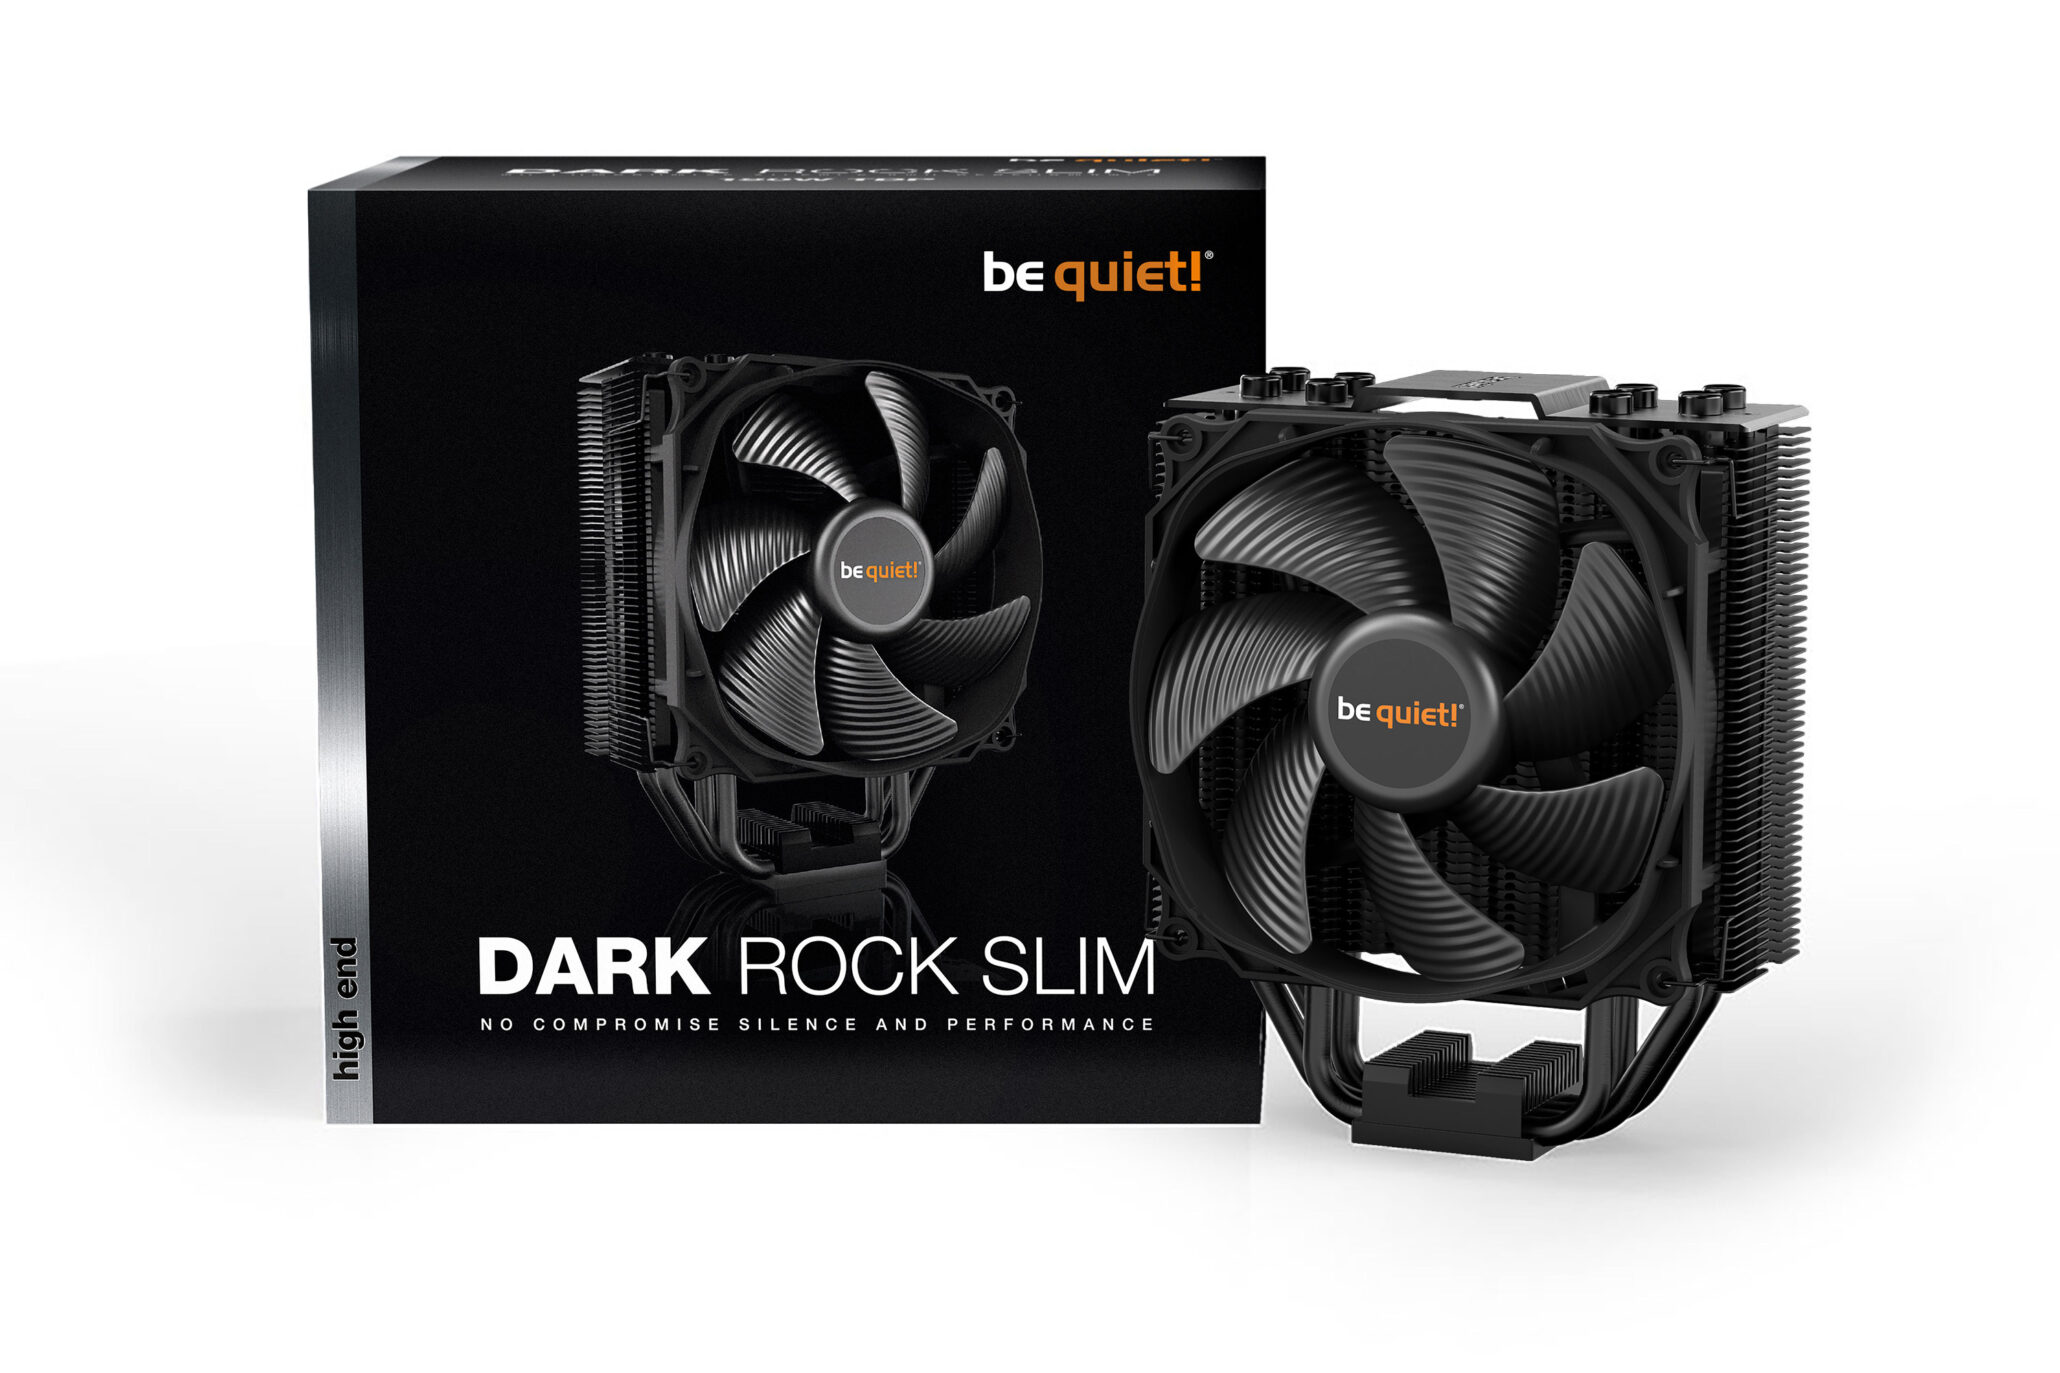 Be Quiet Dark Rock Slim - Air Cooler For All Builds